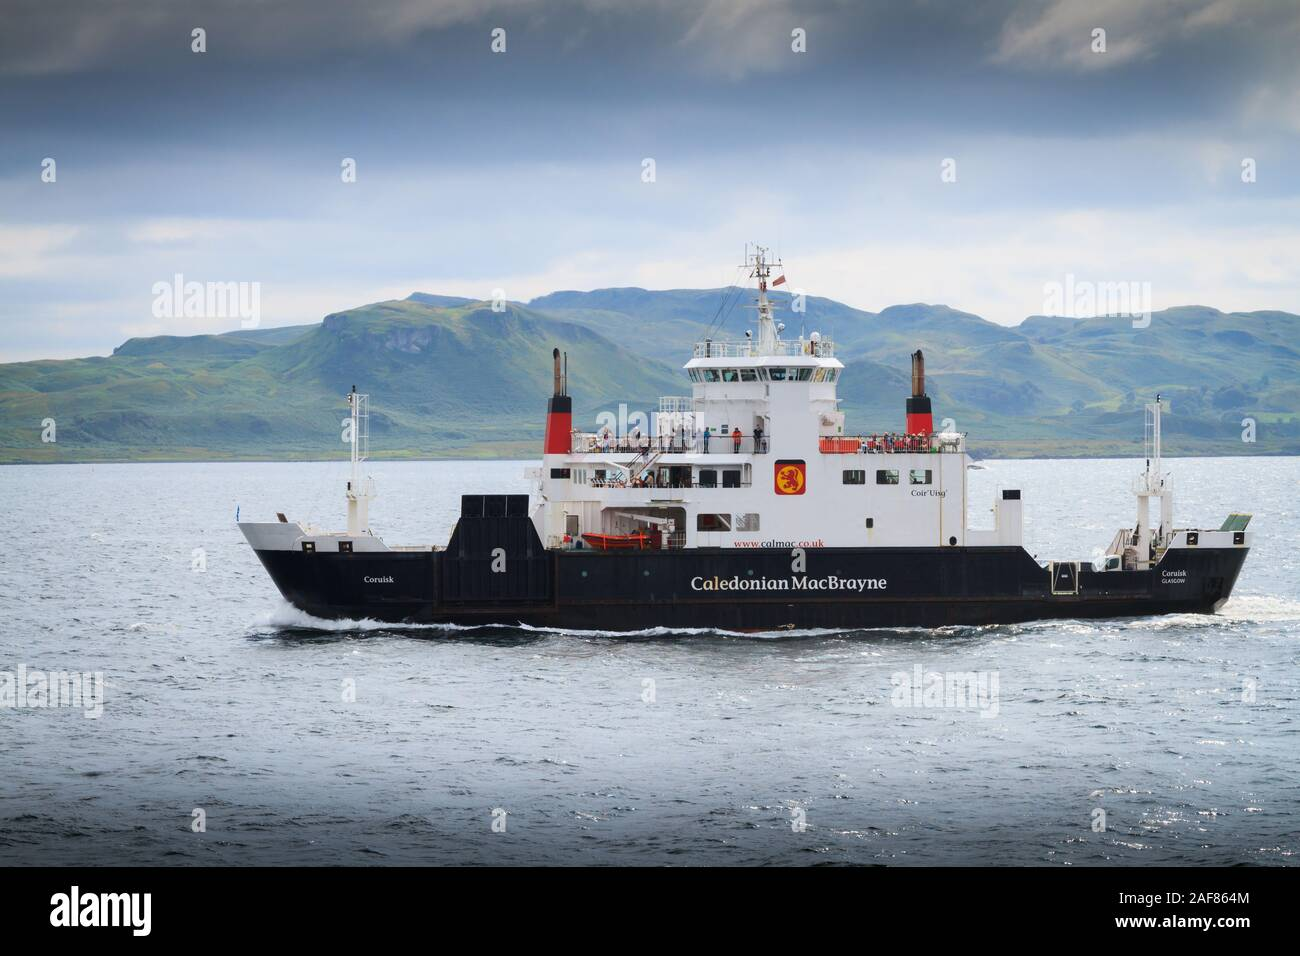 MV Coruisk car and passenger ferry operated by Caledonian MacBrayne sailing across the Sound of Mull to Oban in Scotland Stock Photo